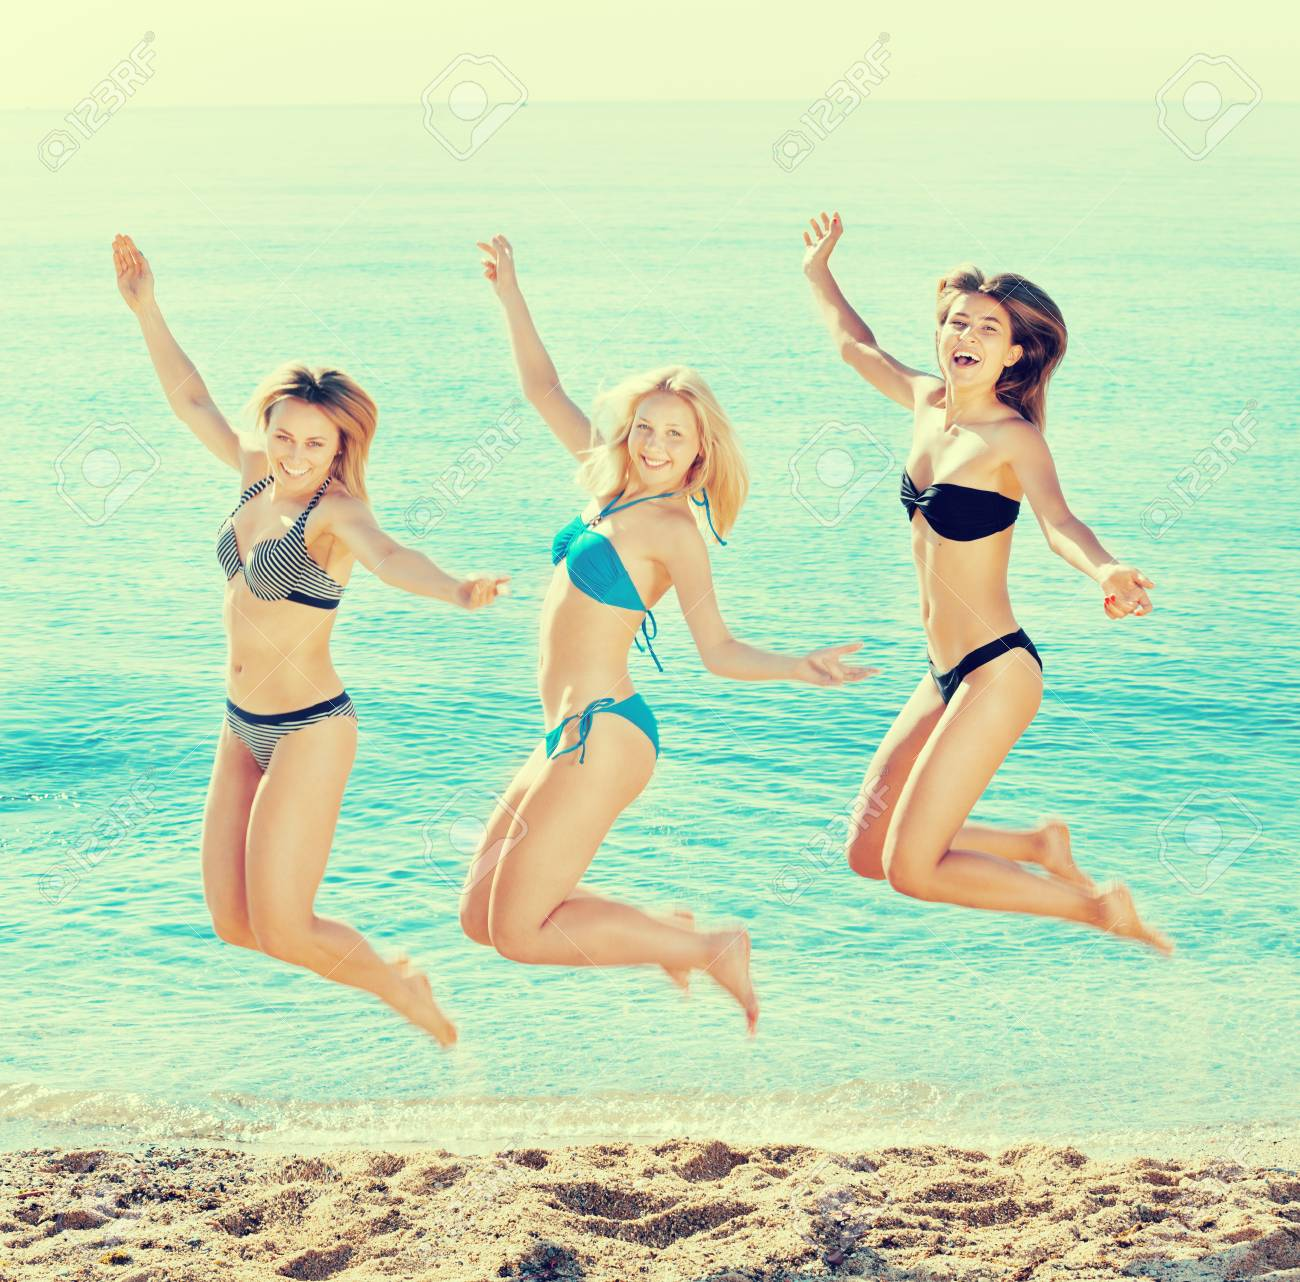 465a884ecf1 Portrait of three cheerful young women in swimsuits hopping together..